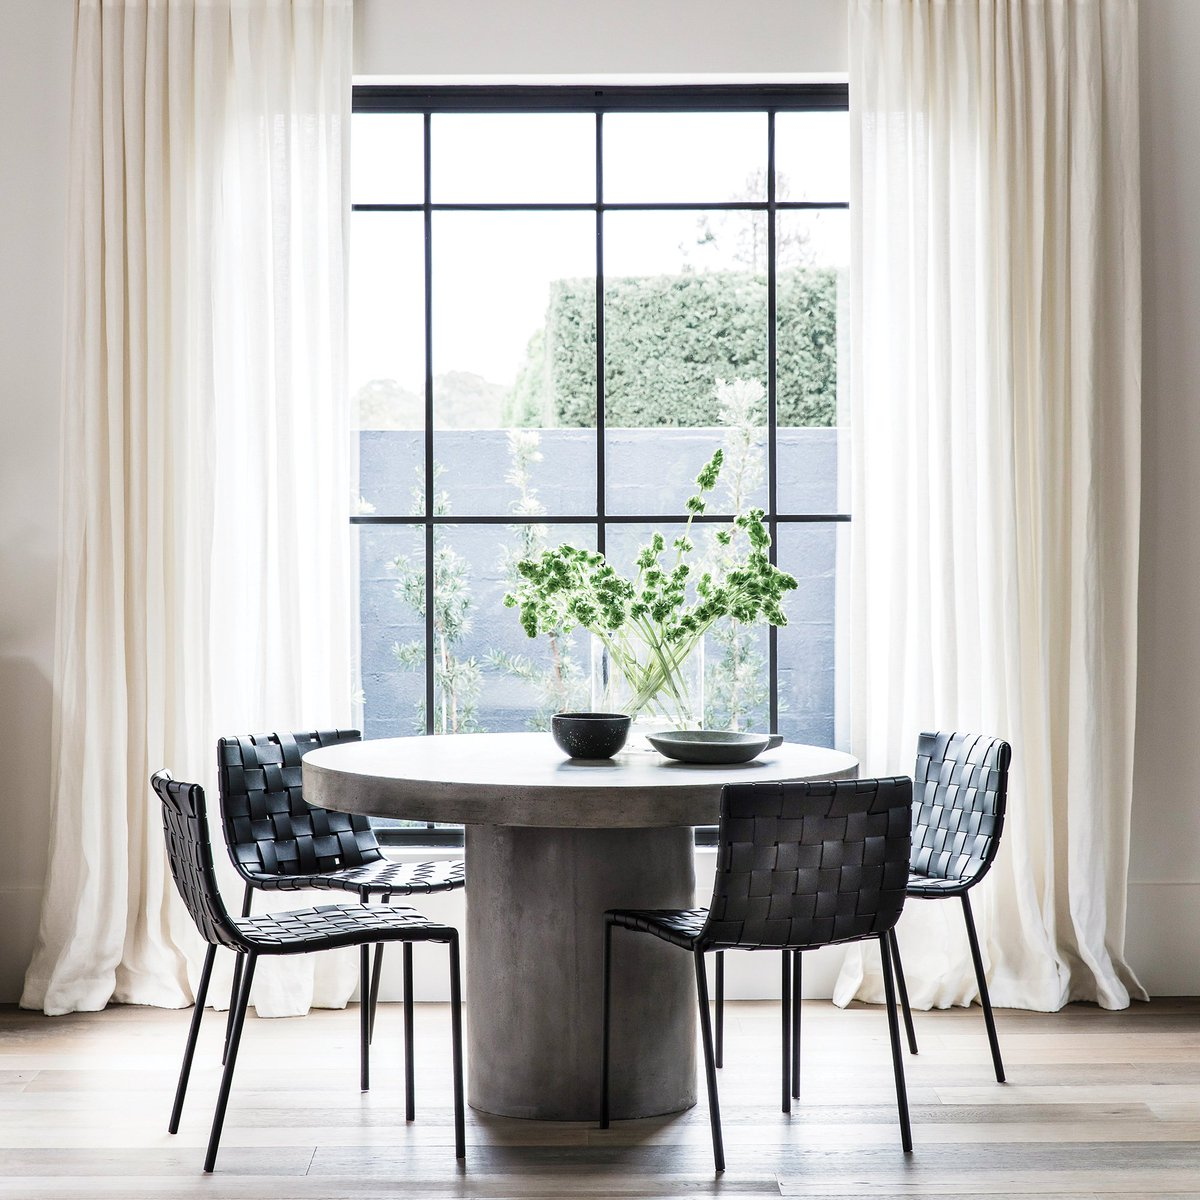 Coco Republic On Twitter With Modern Form The Regent Dining Table Impresses With A Concrete Finish Paired With The Milano Dining Chair